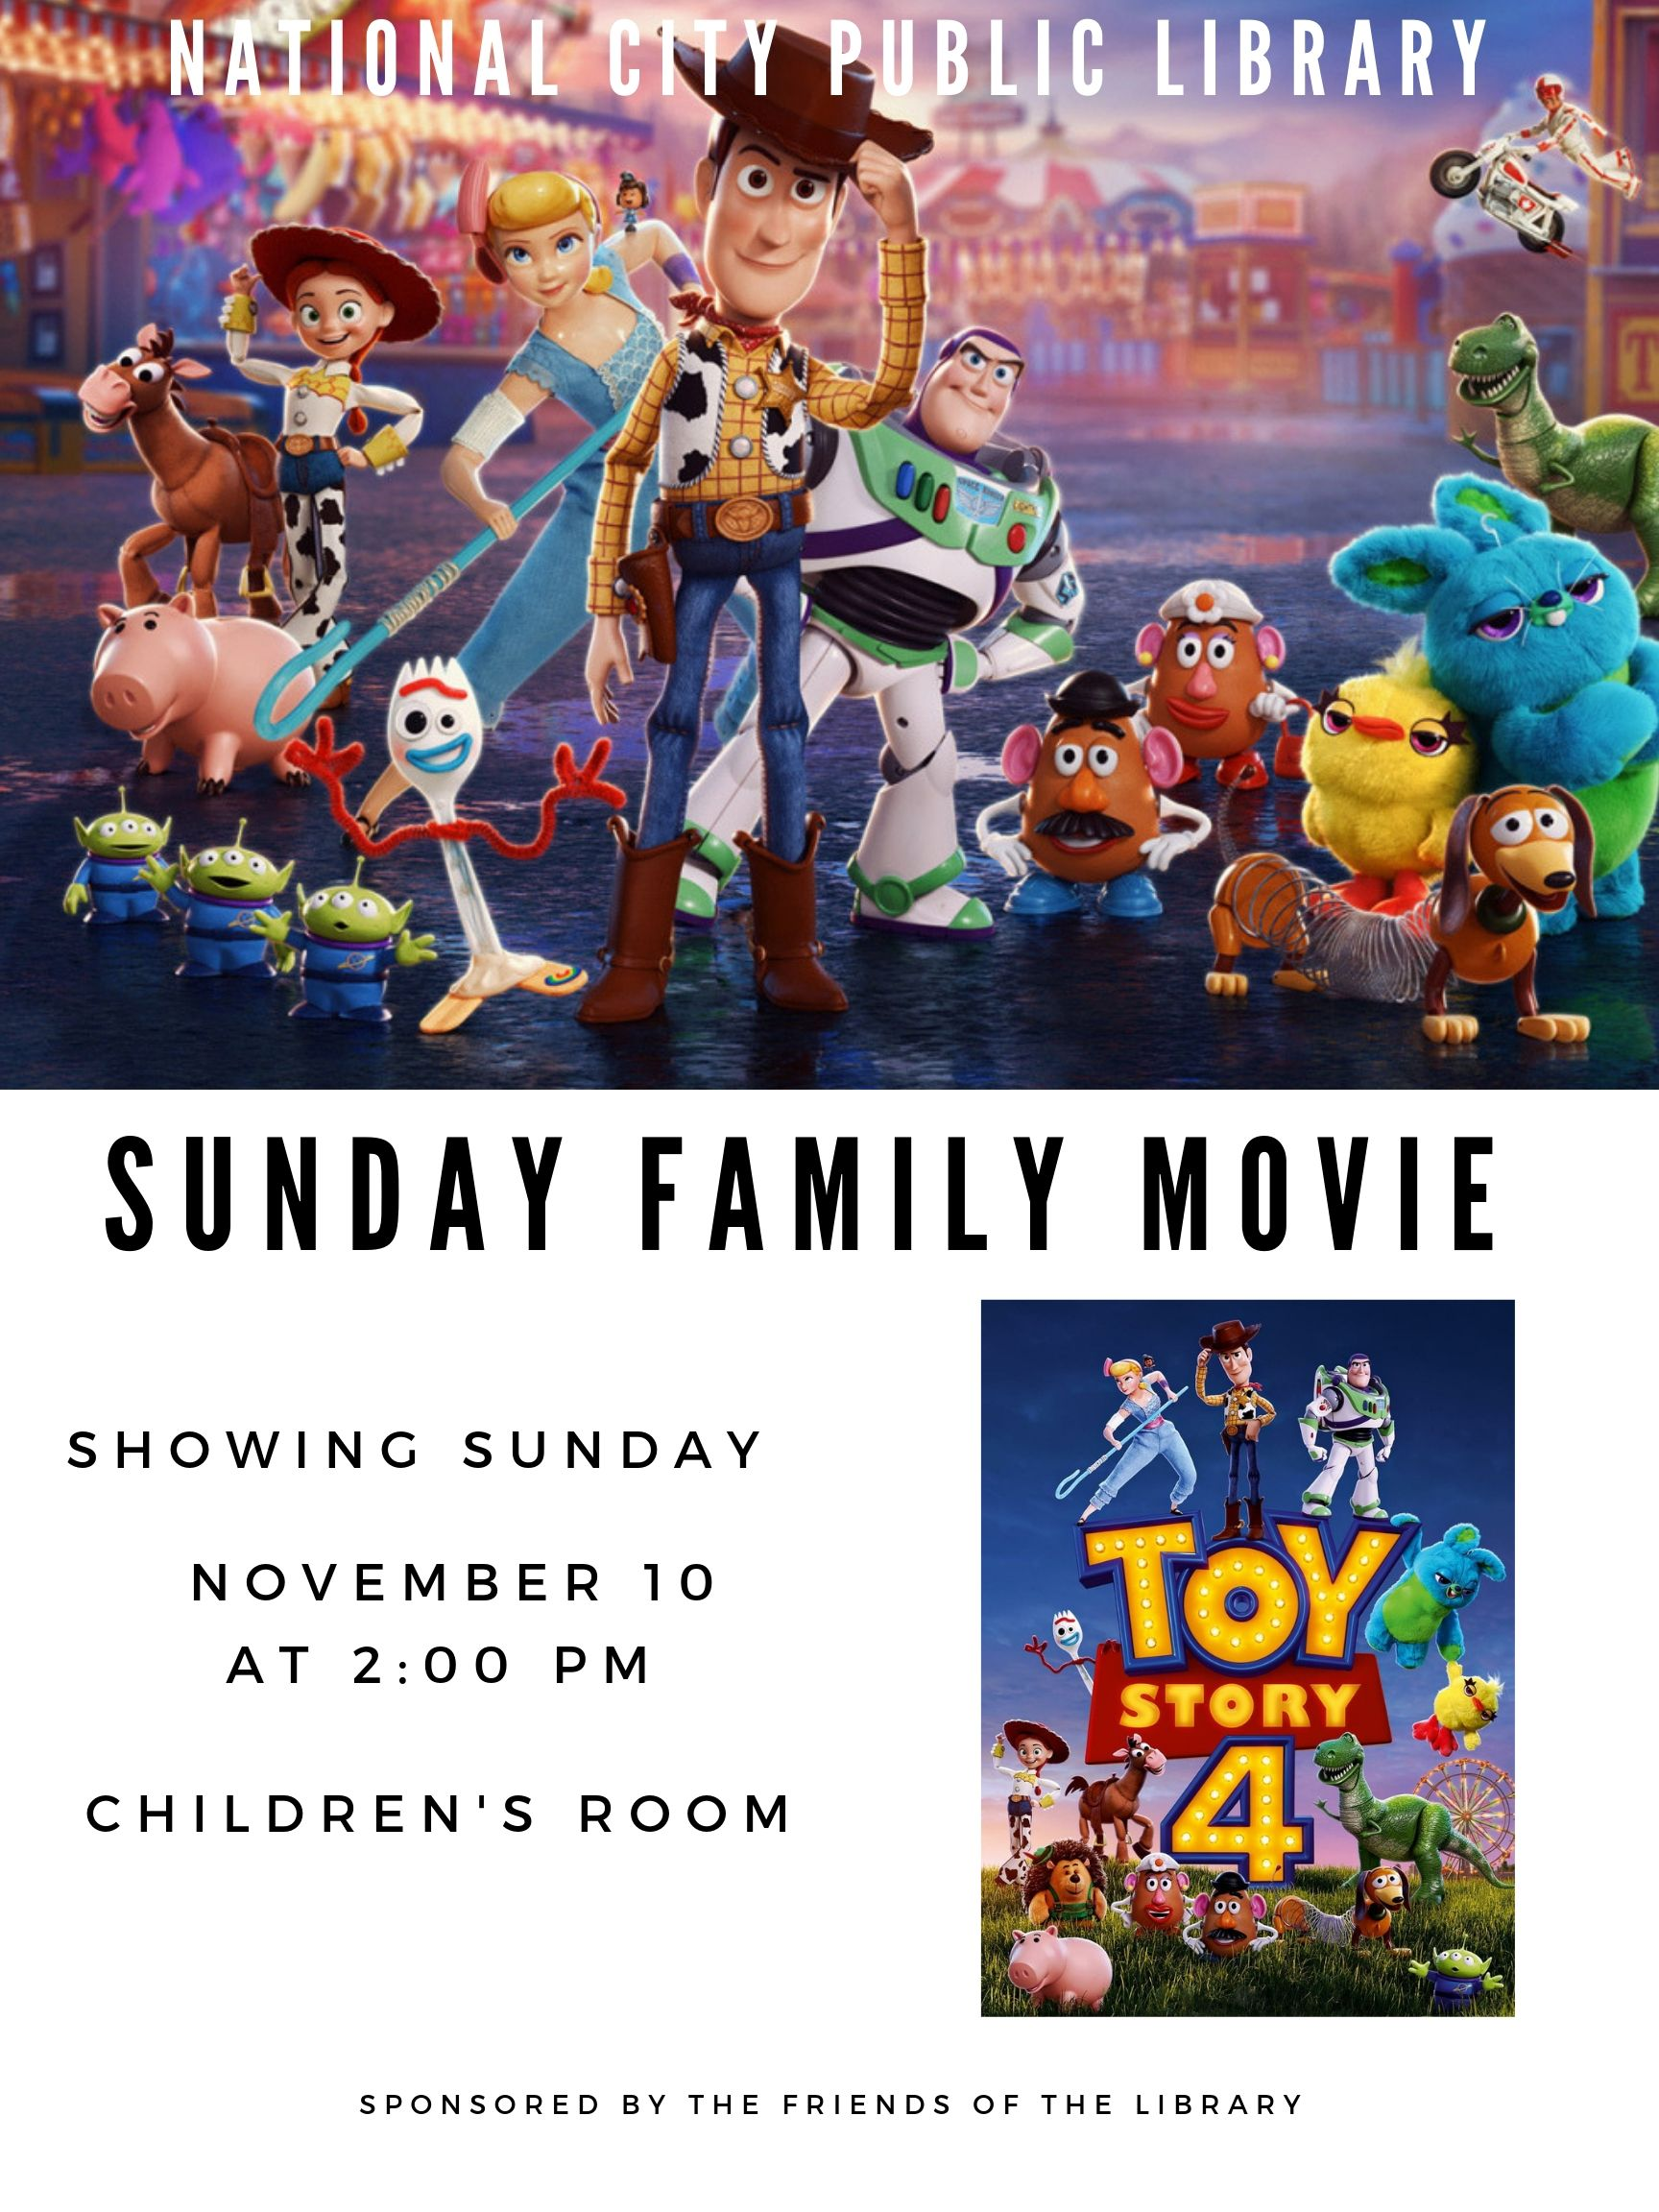 Family Movie Nov. 10 Toy Story 4